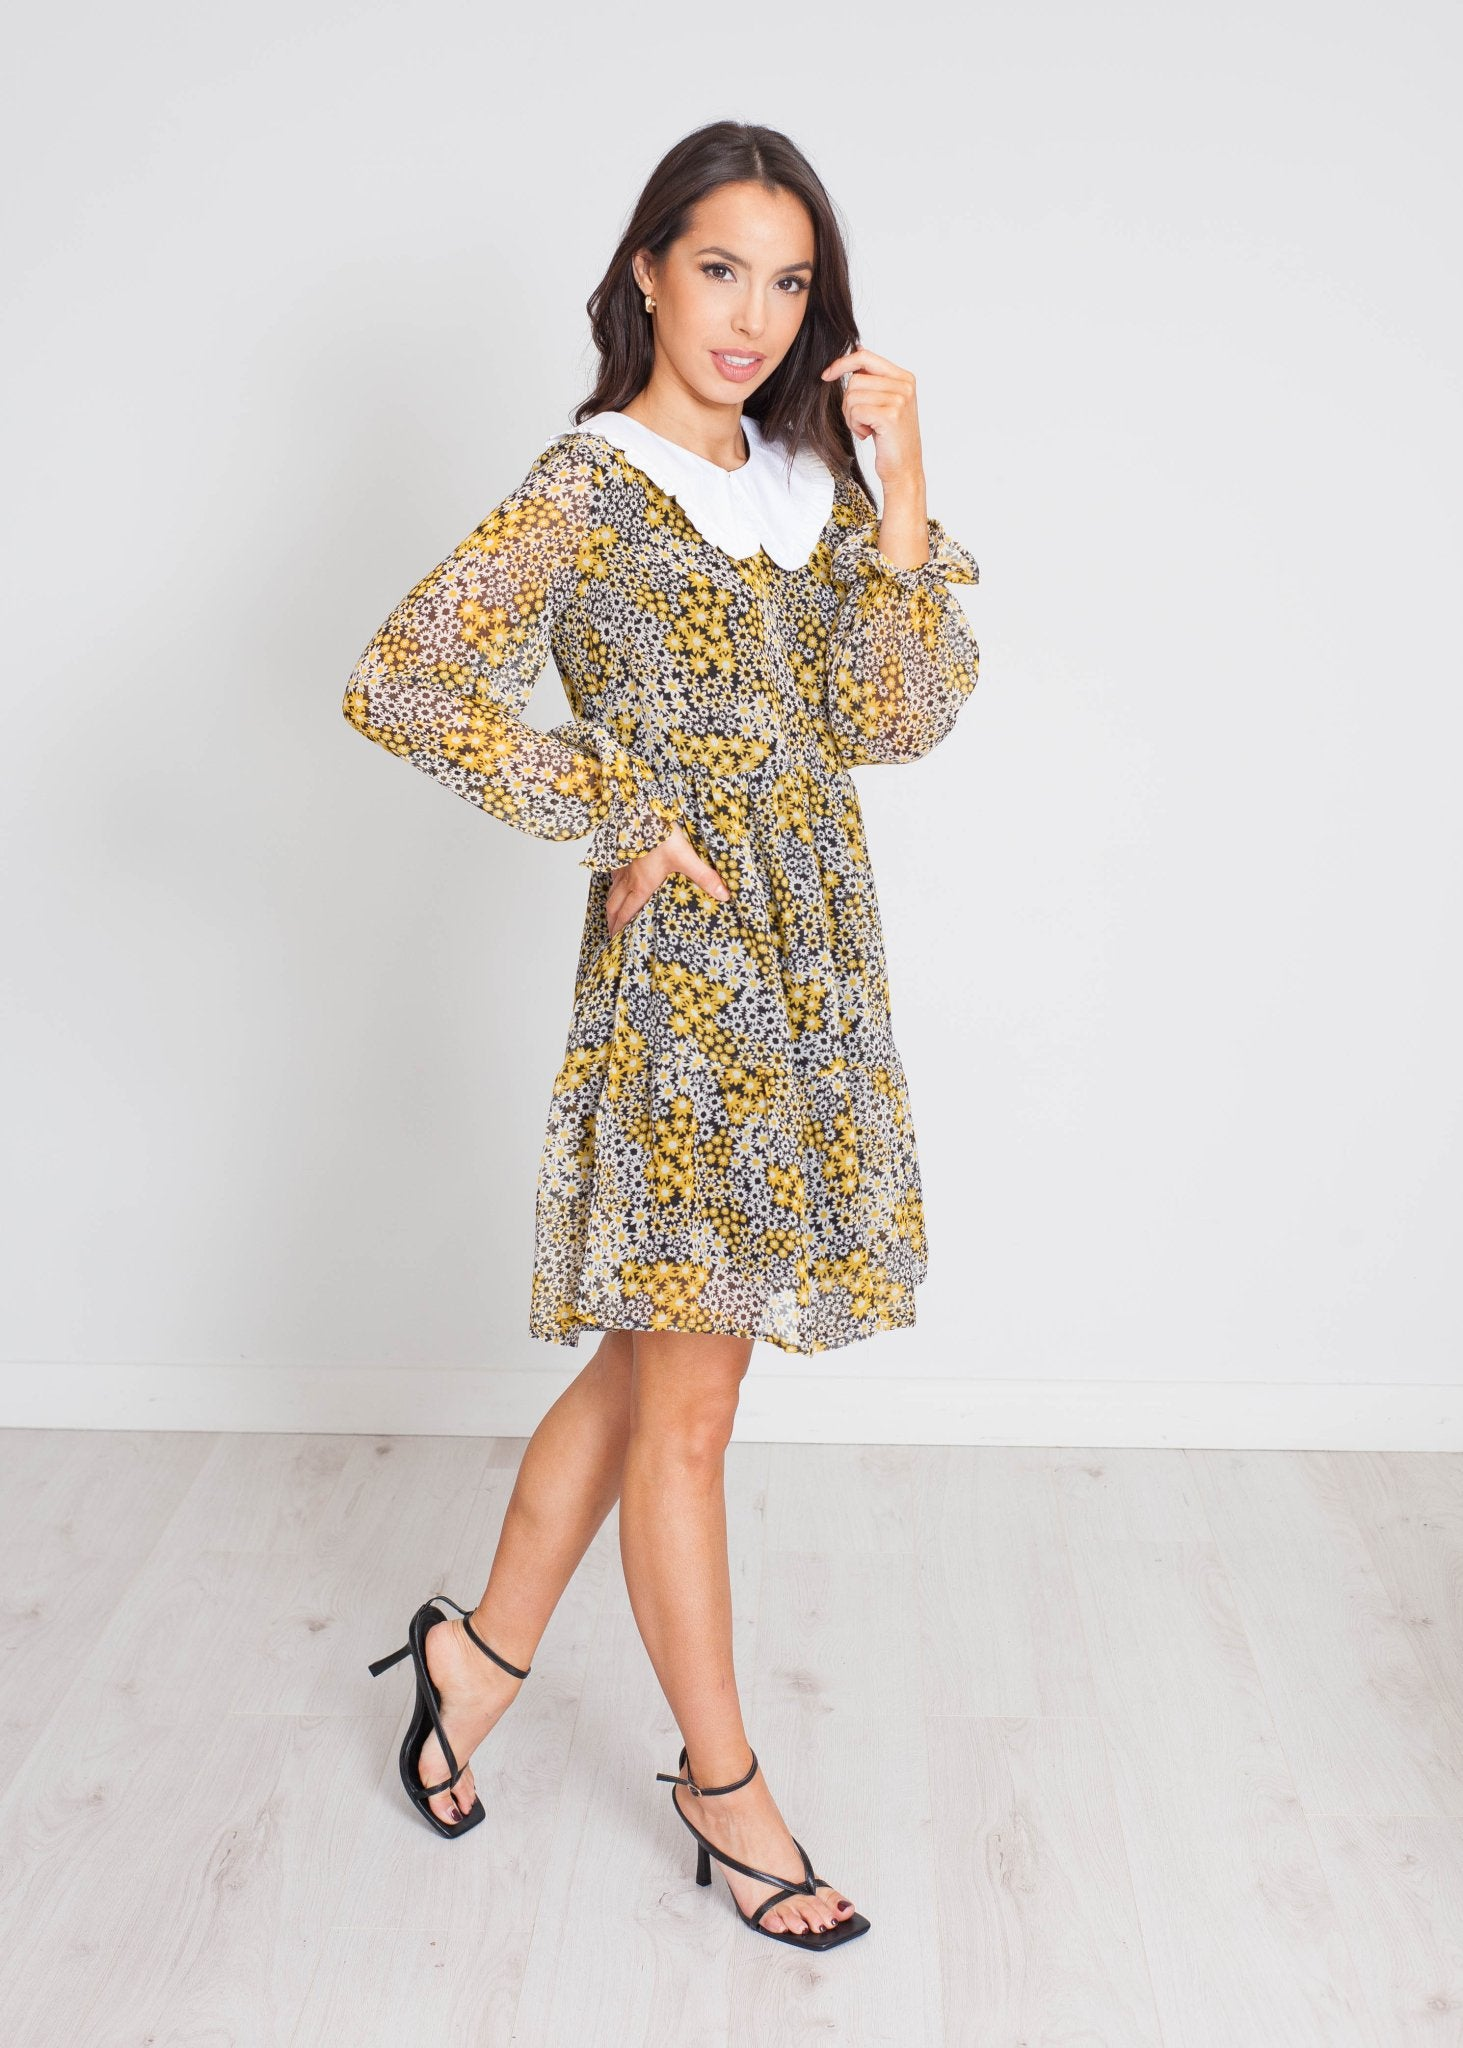 Freya Floral Dress With Collar In Black Mix - The Walk in Wardrobe